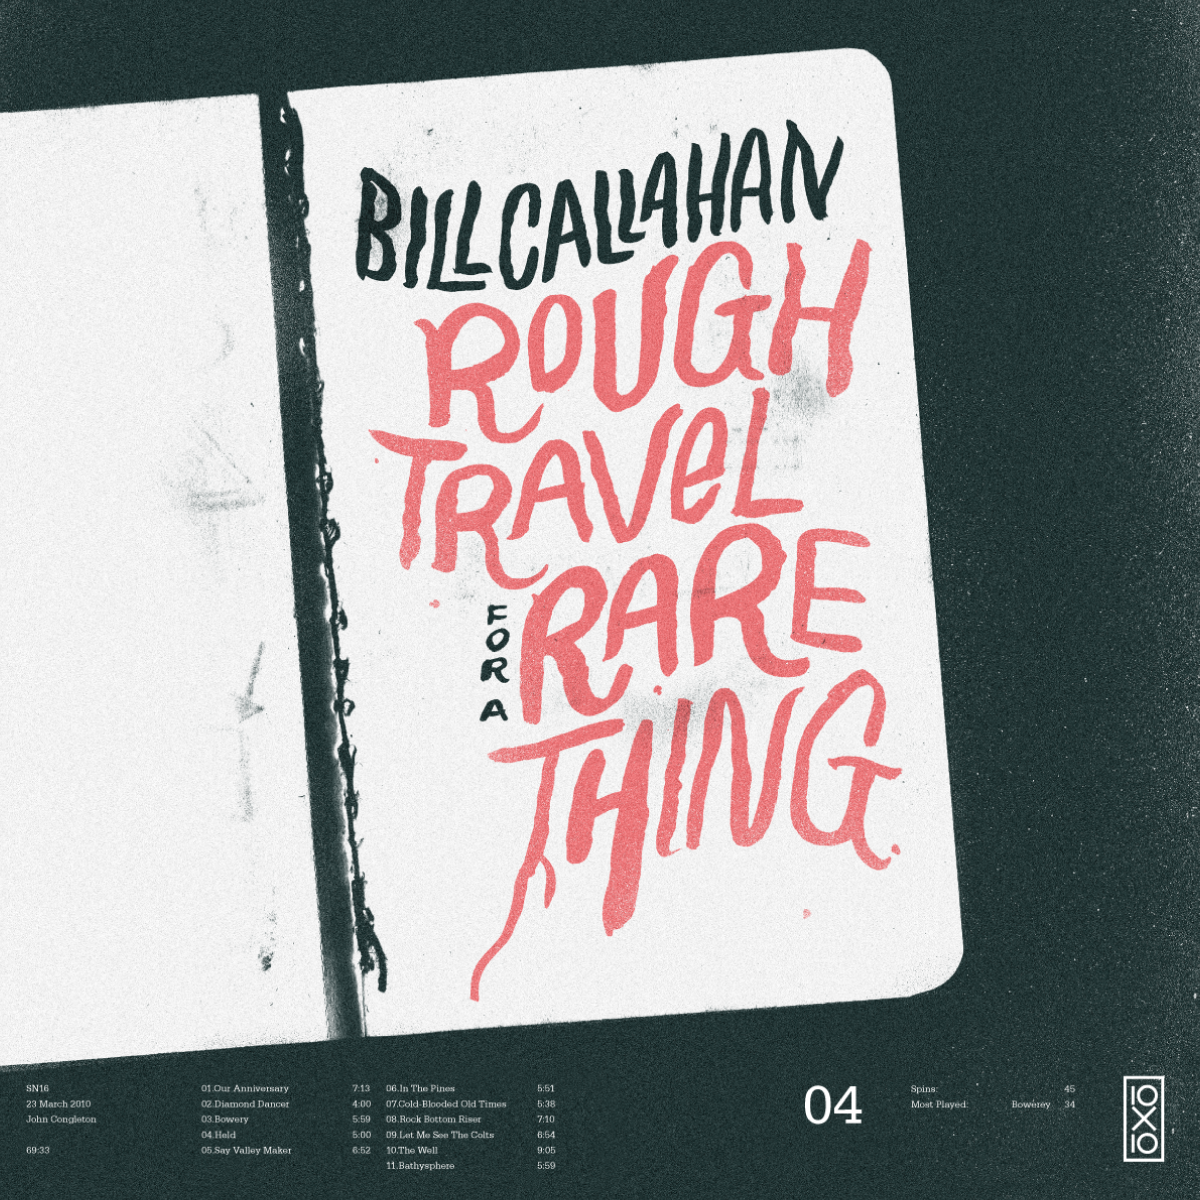 All sizes | 05. Bill Callahan - Rough Travel for a Rare Thing | Flickr - Photo Sharing!